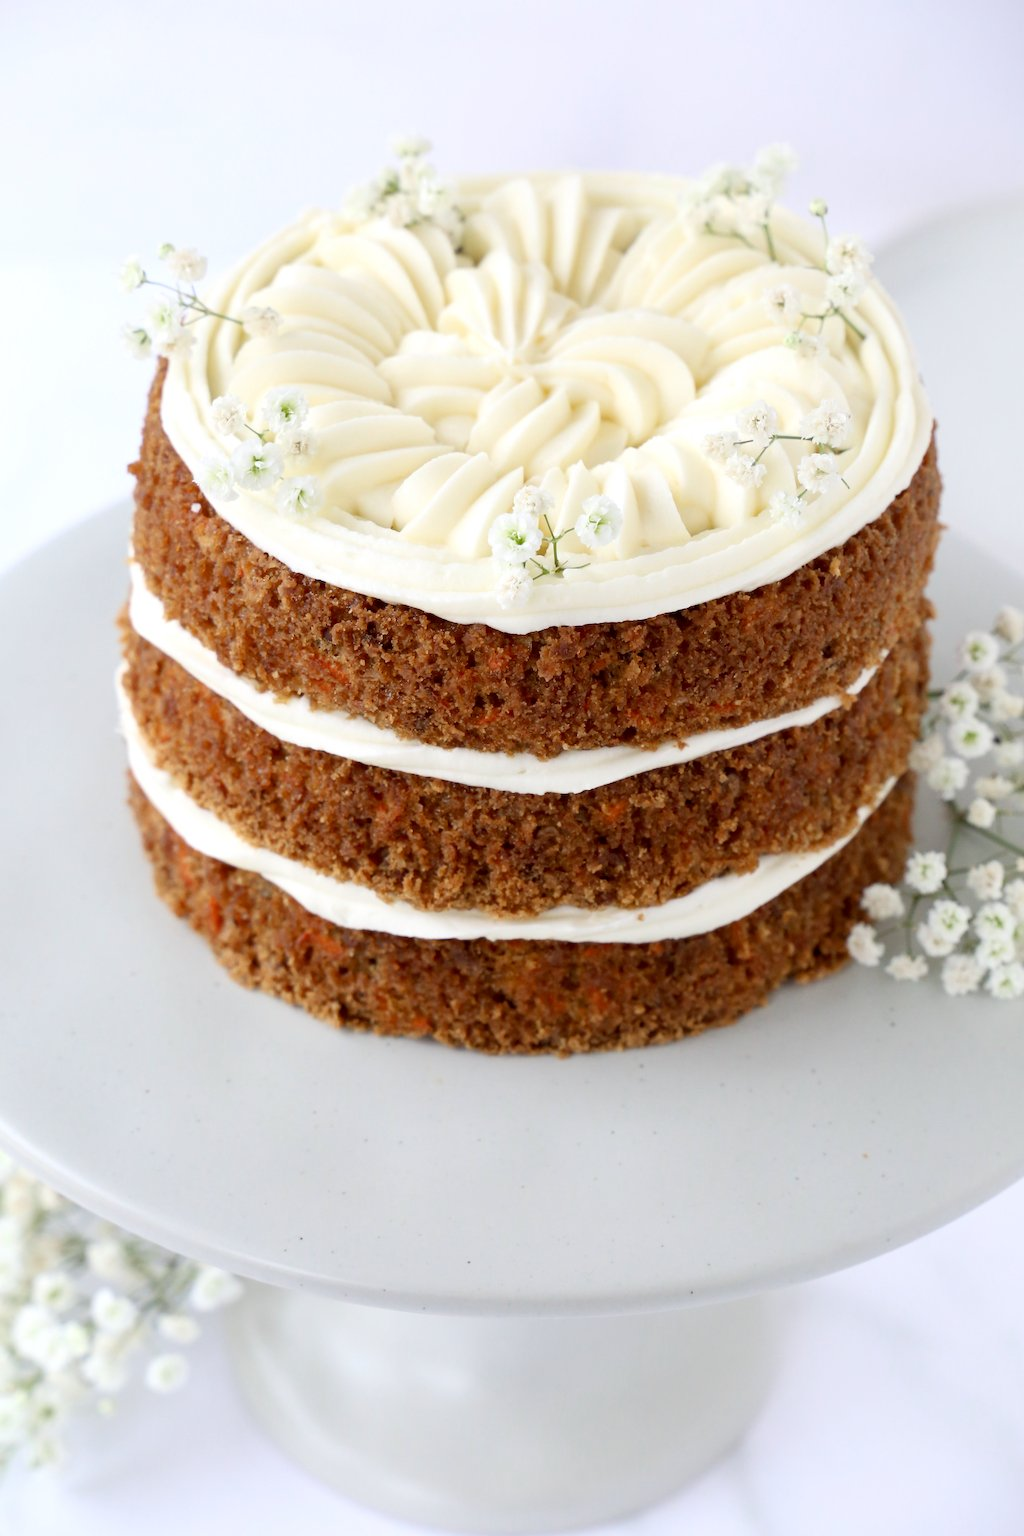 Three layers of carrot cake and cream cheese frosting on a gray cake stand